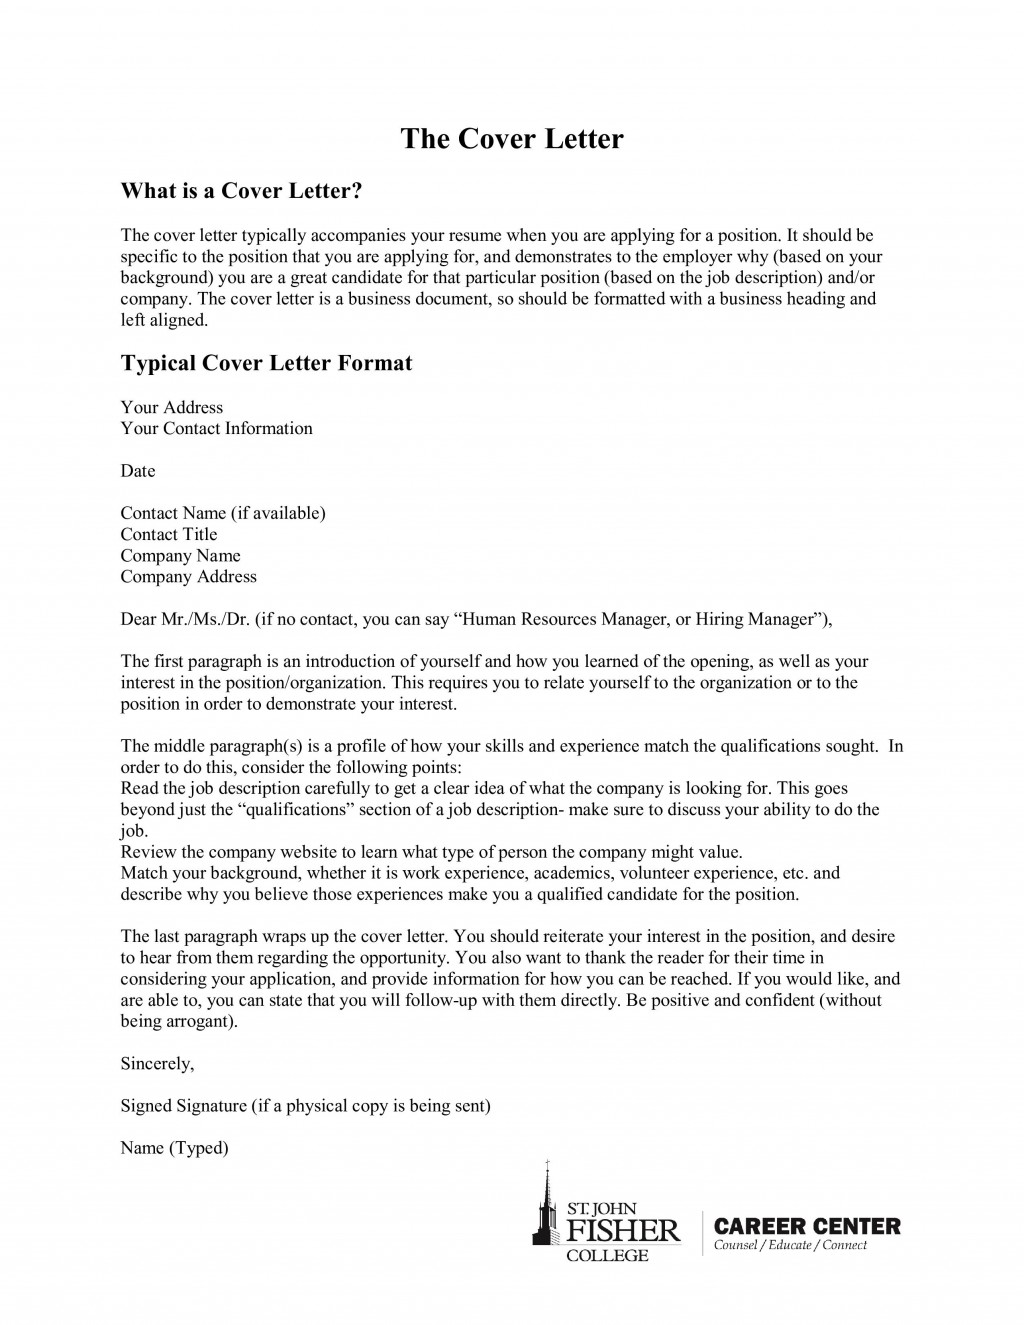 Sample Cover Letter Heading from www.addictionary.org